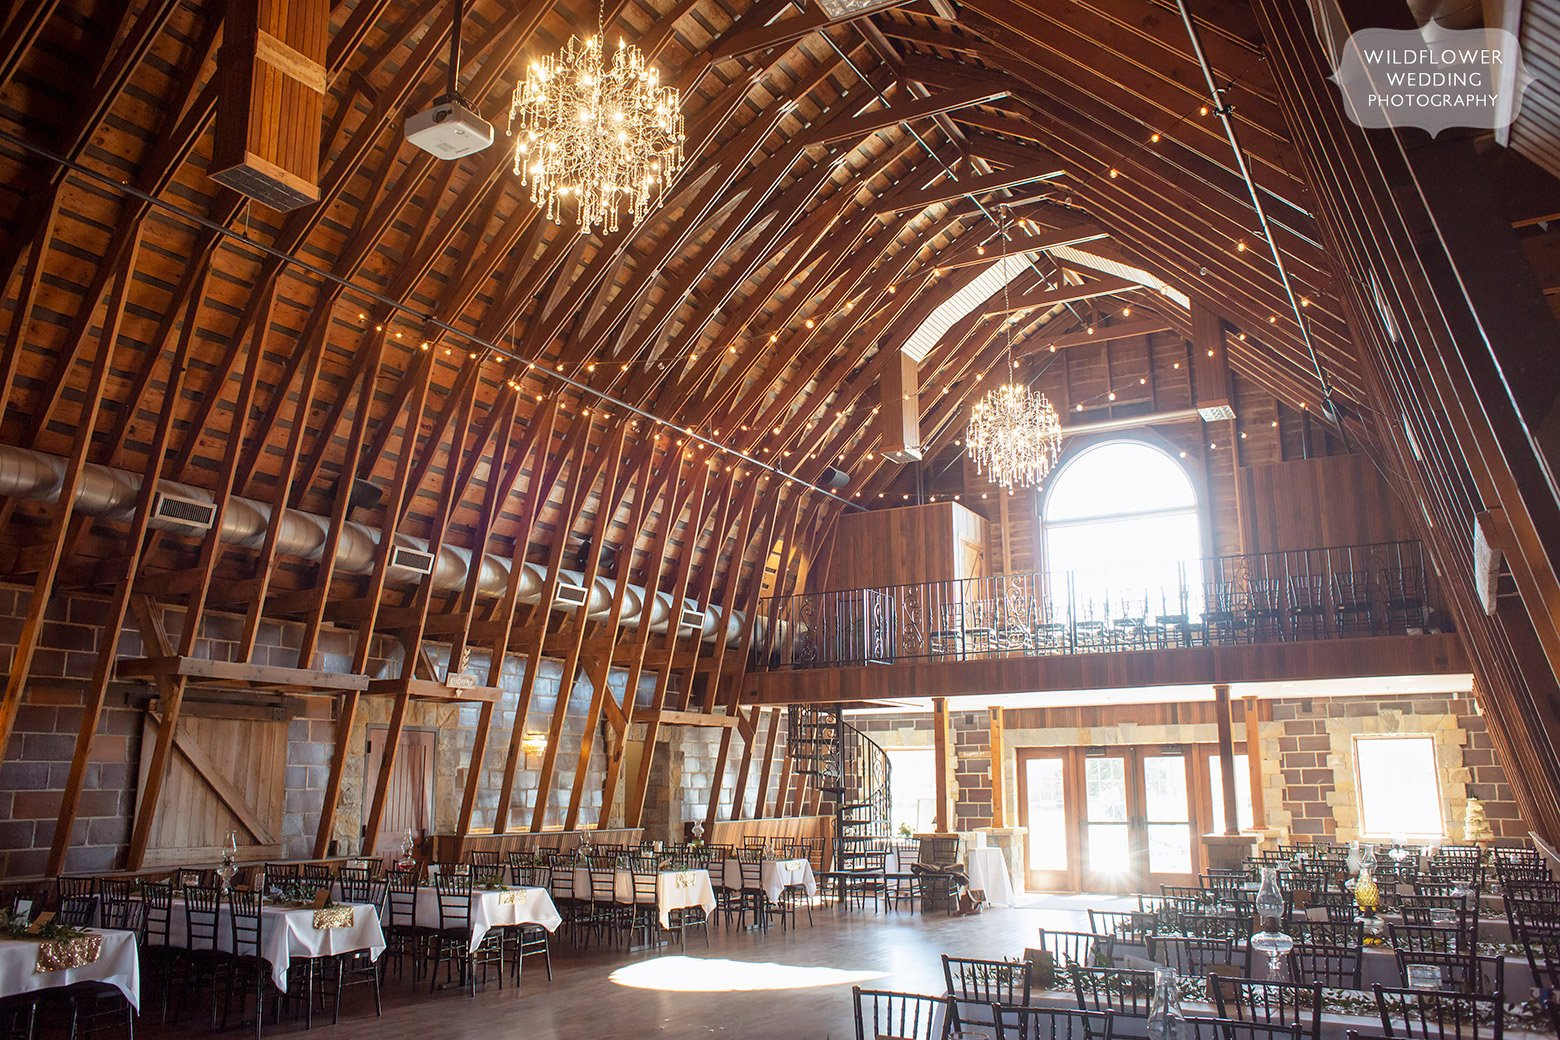 Inside view of the historic Brownstone Barn wedding reception space in Topeka, KS.